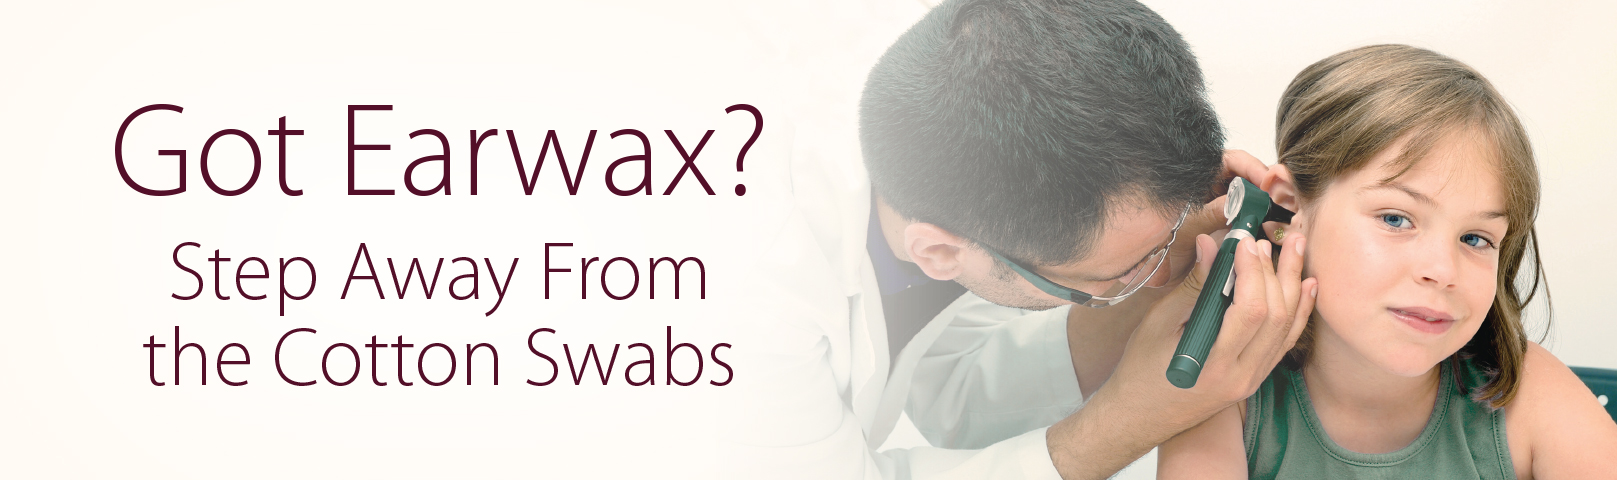 Got earwax? Step away from the cotton swabs.